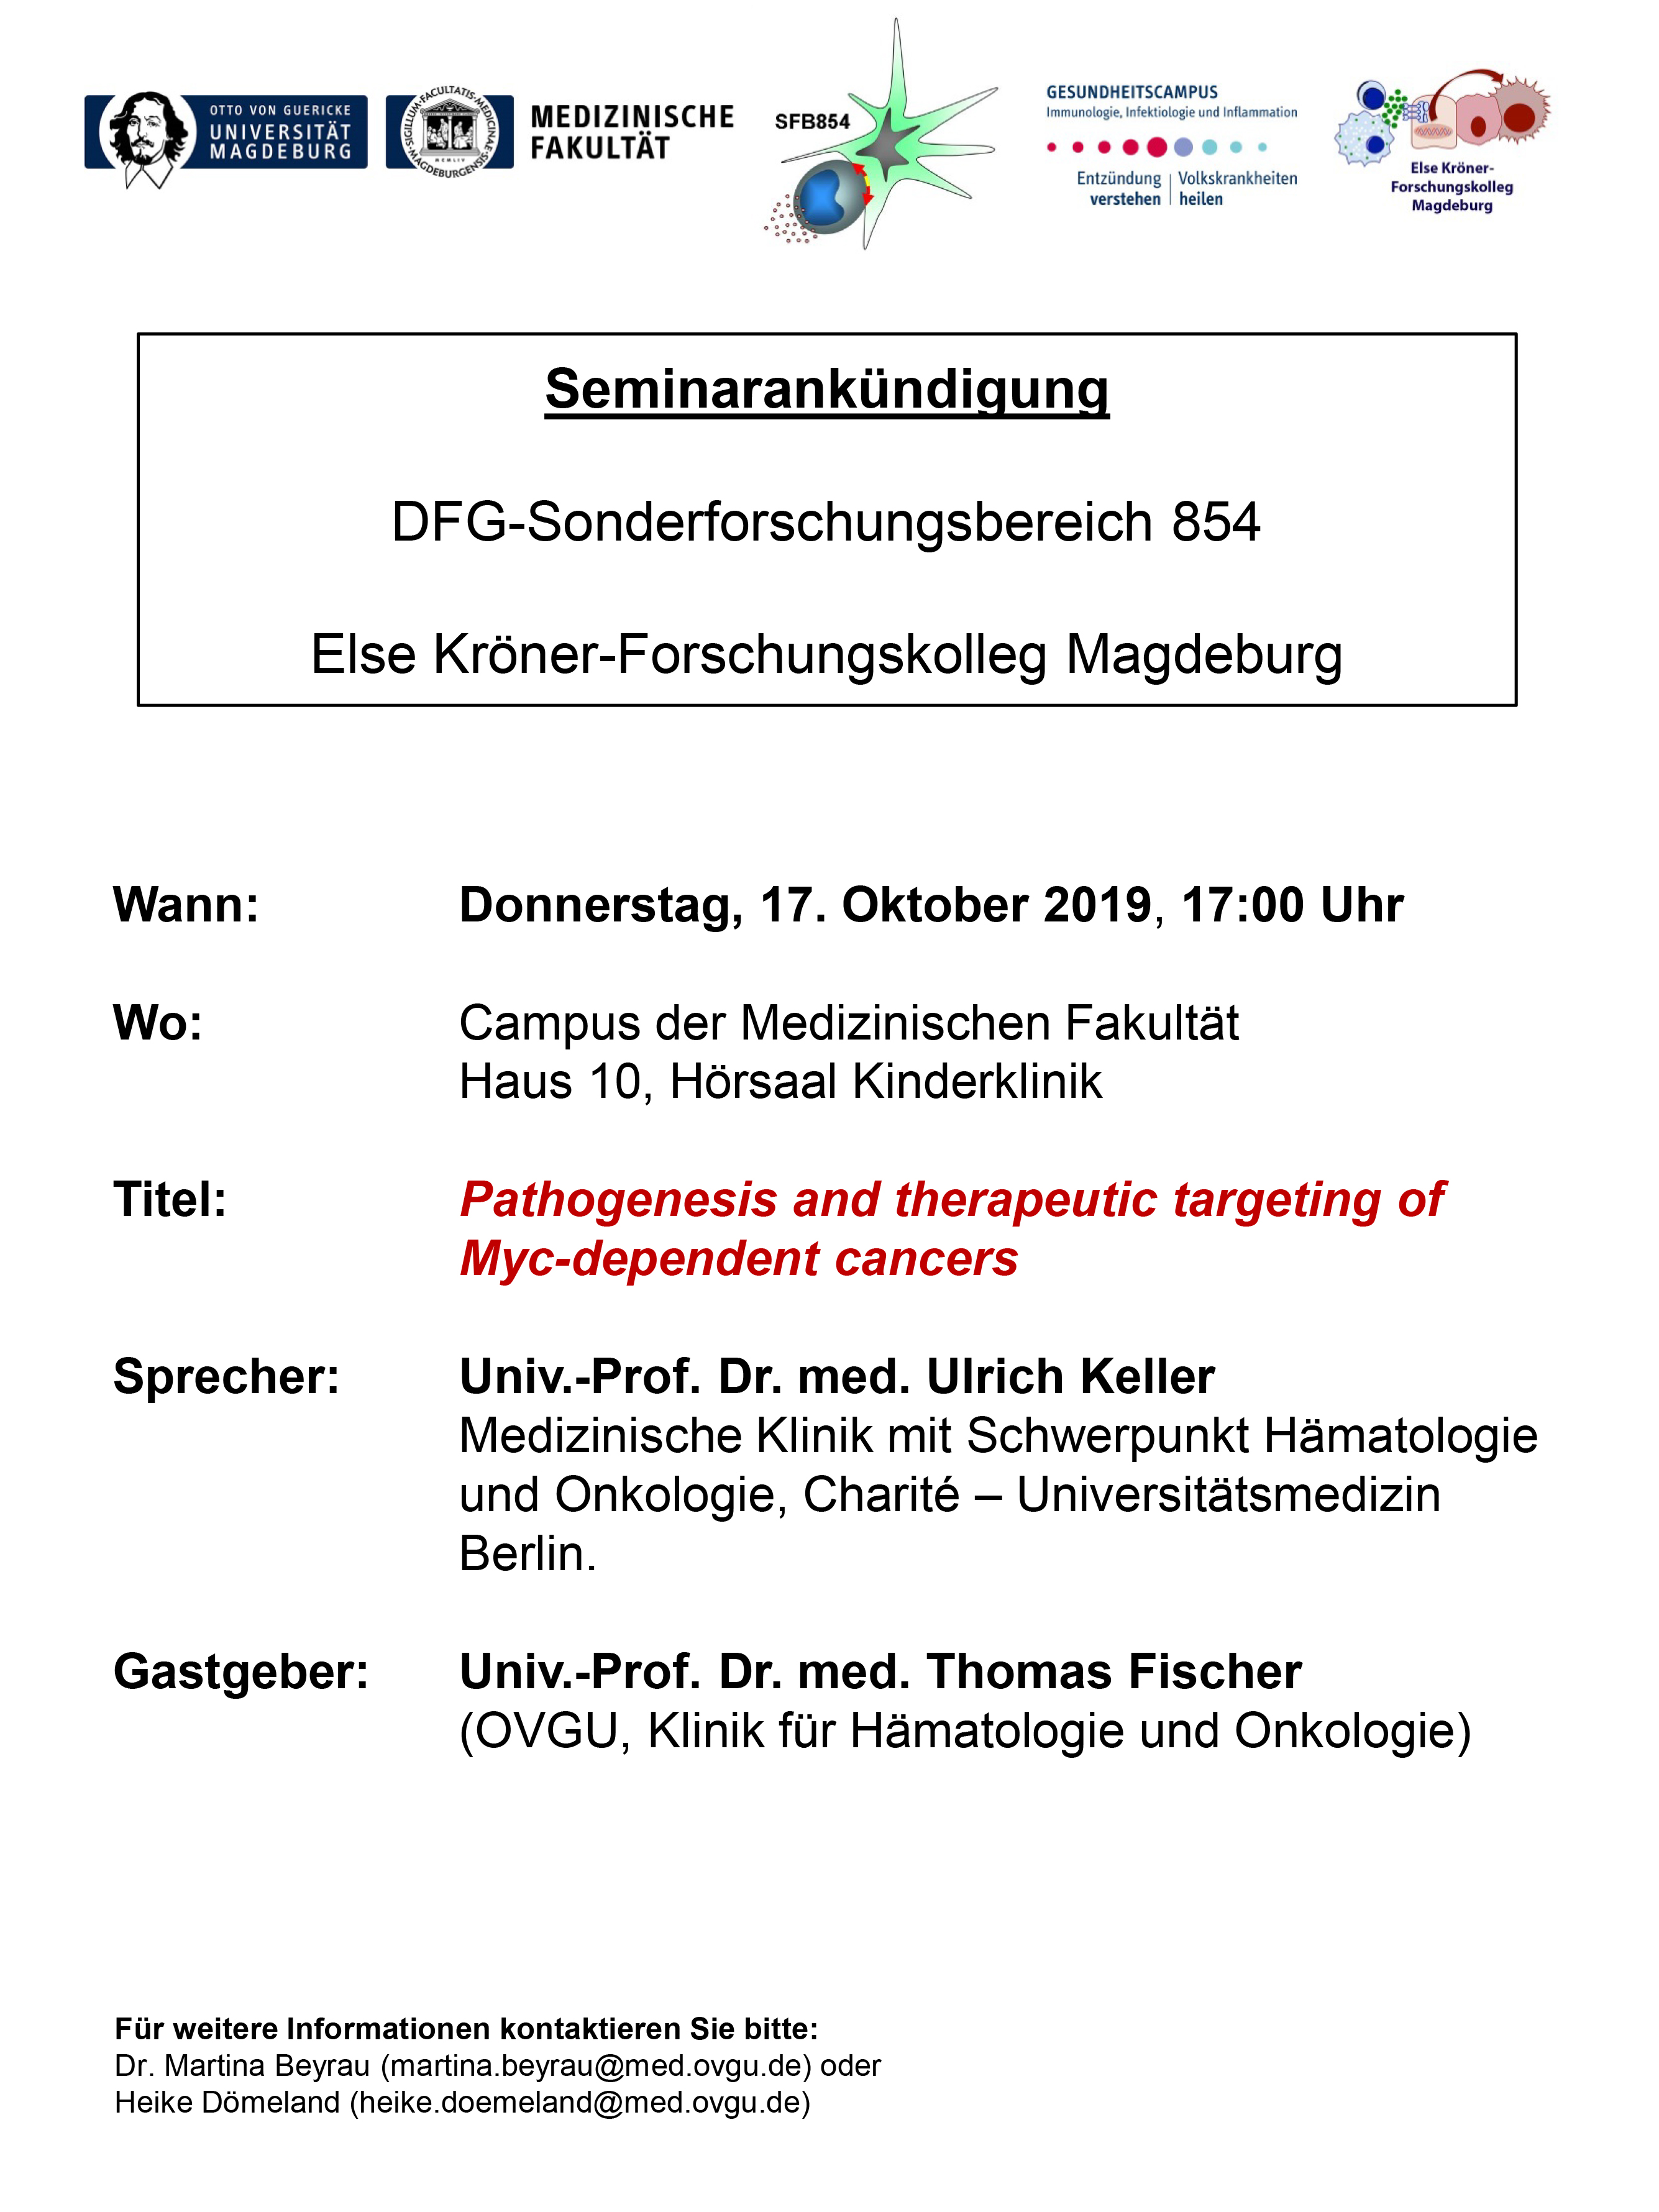 CRC 854: Pathogenesis and therapeutic targeting of Myc-dependent cancers @ Campus of the Medical Fakulty, House 10, Hörsaal Kinderklinik